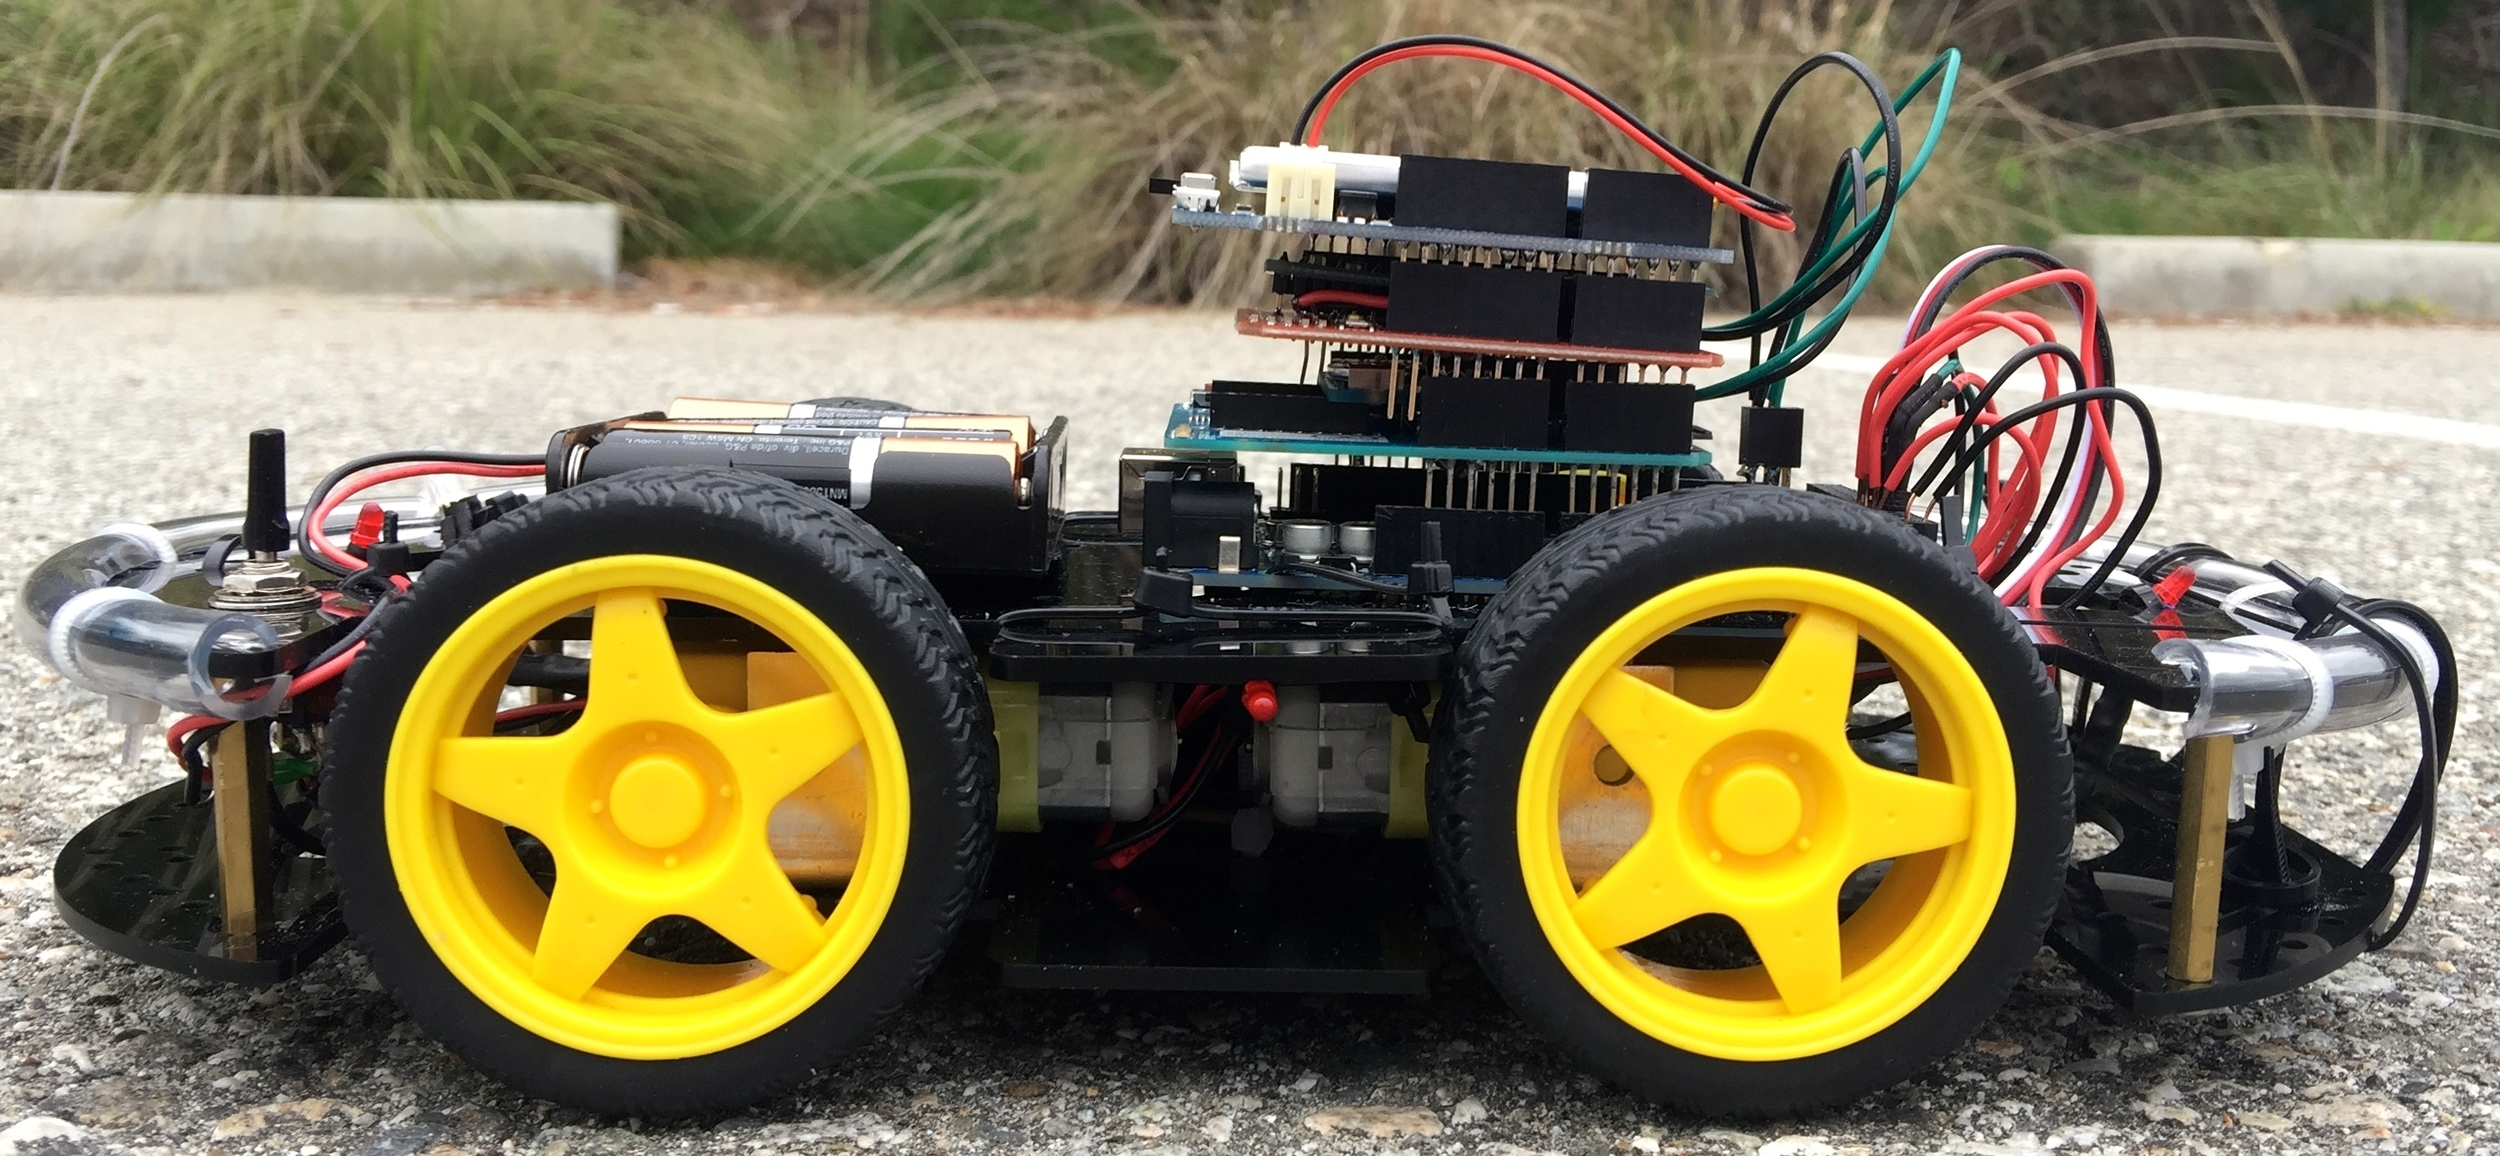 Completed Vehicle Prototype